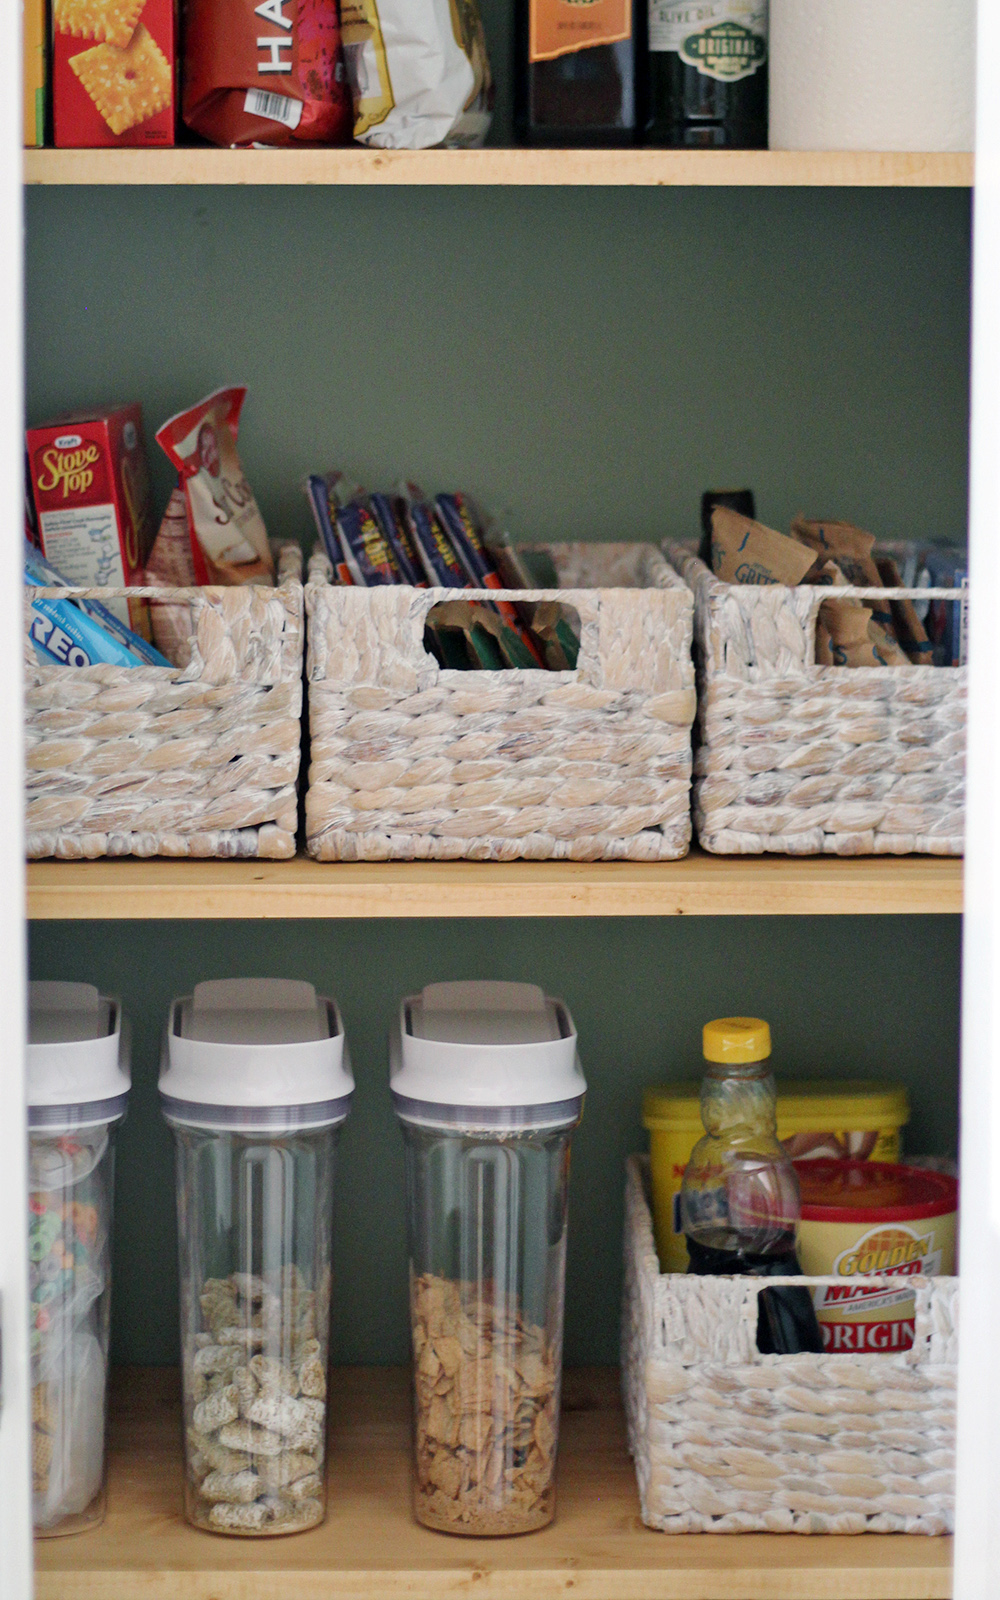 organize in baskets | practical tips for storing more in a kitchen pantry